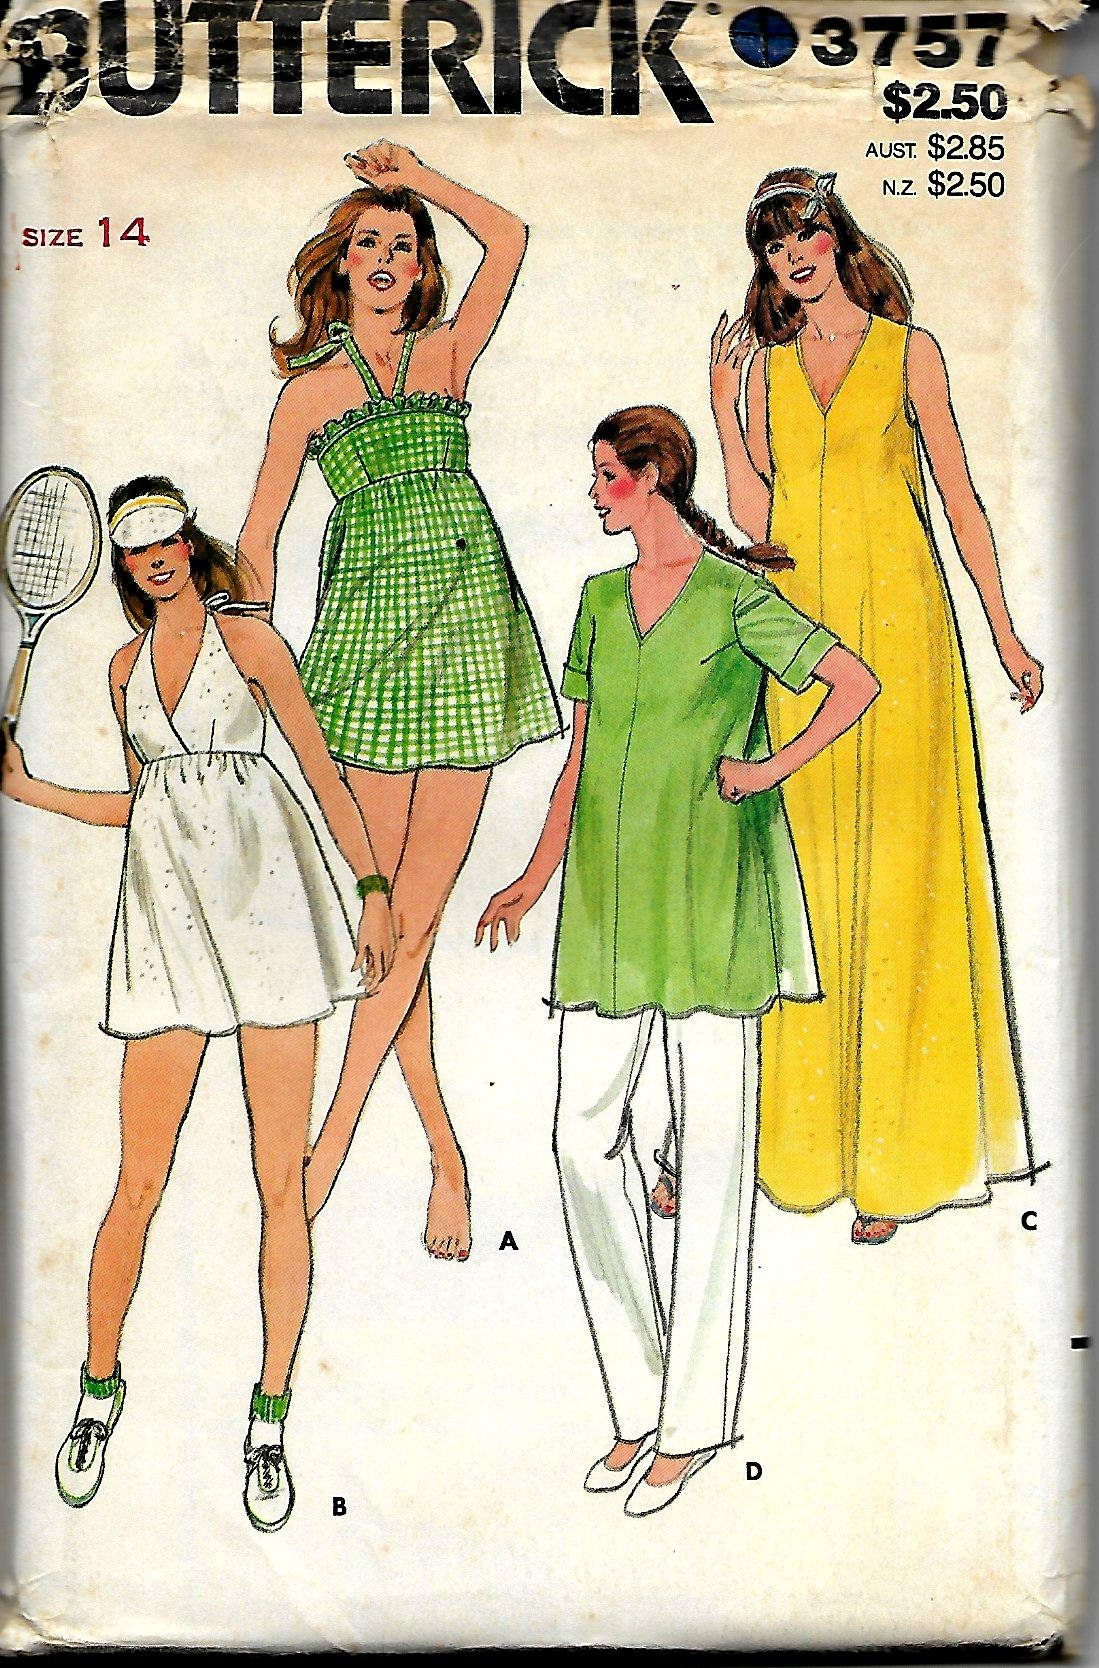 c855e908f069e Butterick 3757 Misses Maternity Swimsuits, Briefs, Cover-ups, Pants Size 14  Uncut from TudorHouseTreasures on Etsy Studio